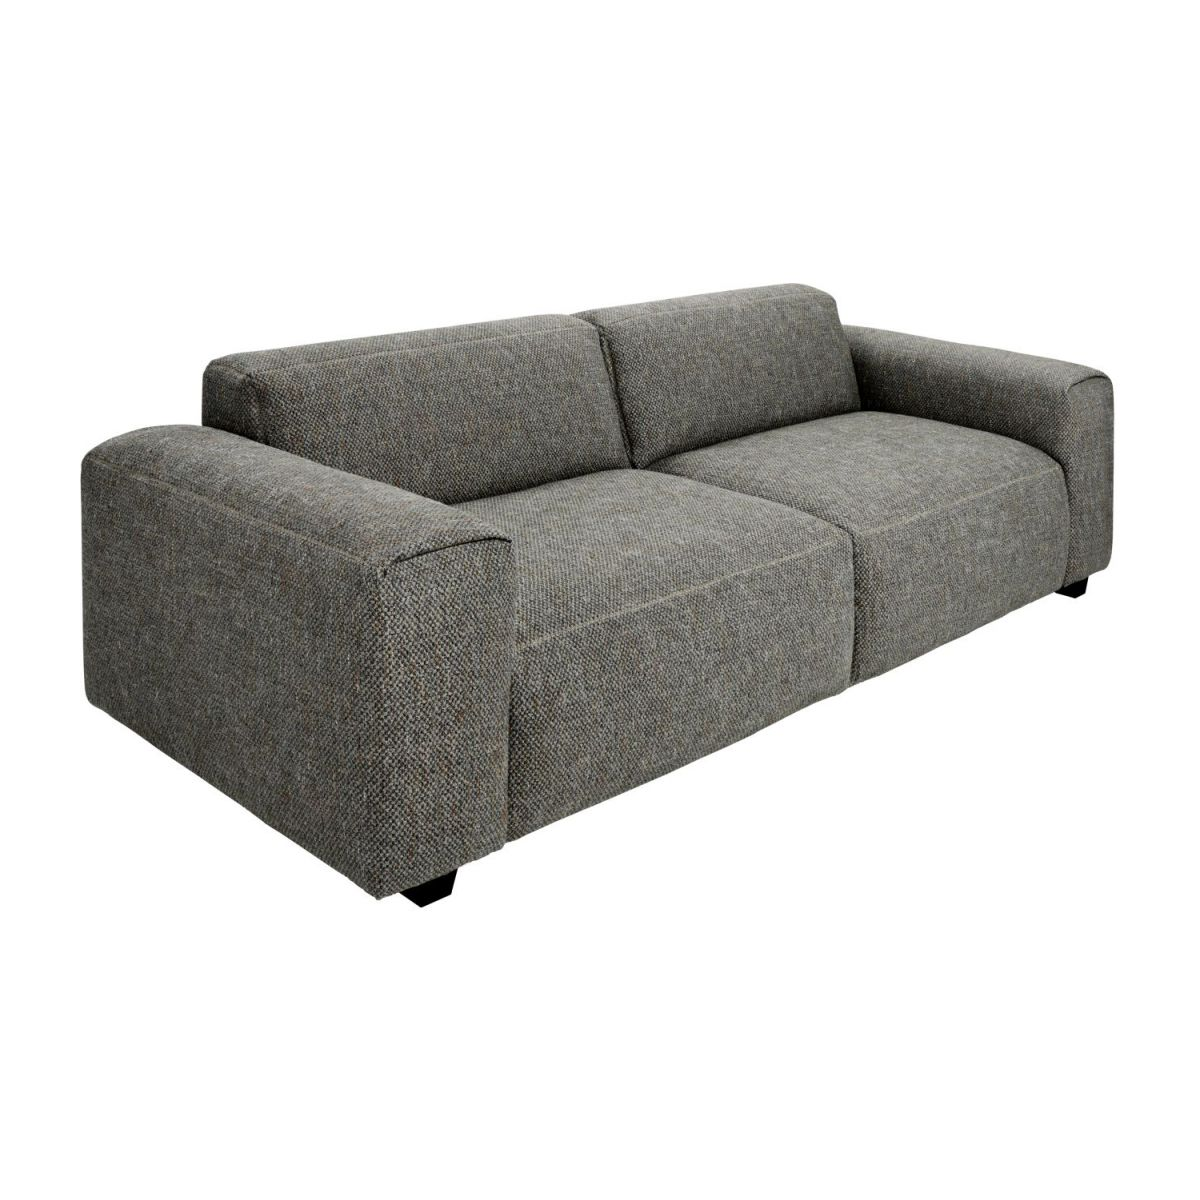 3-Sitzer Sofa aus Stoff Bellagio night black n°1